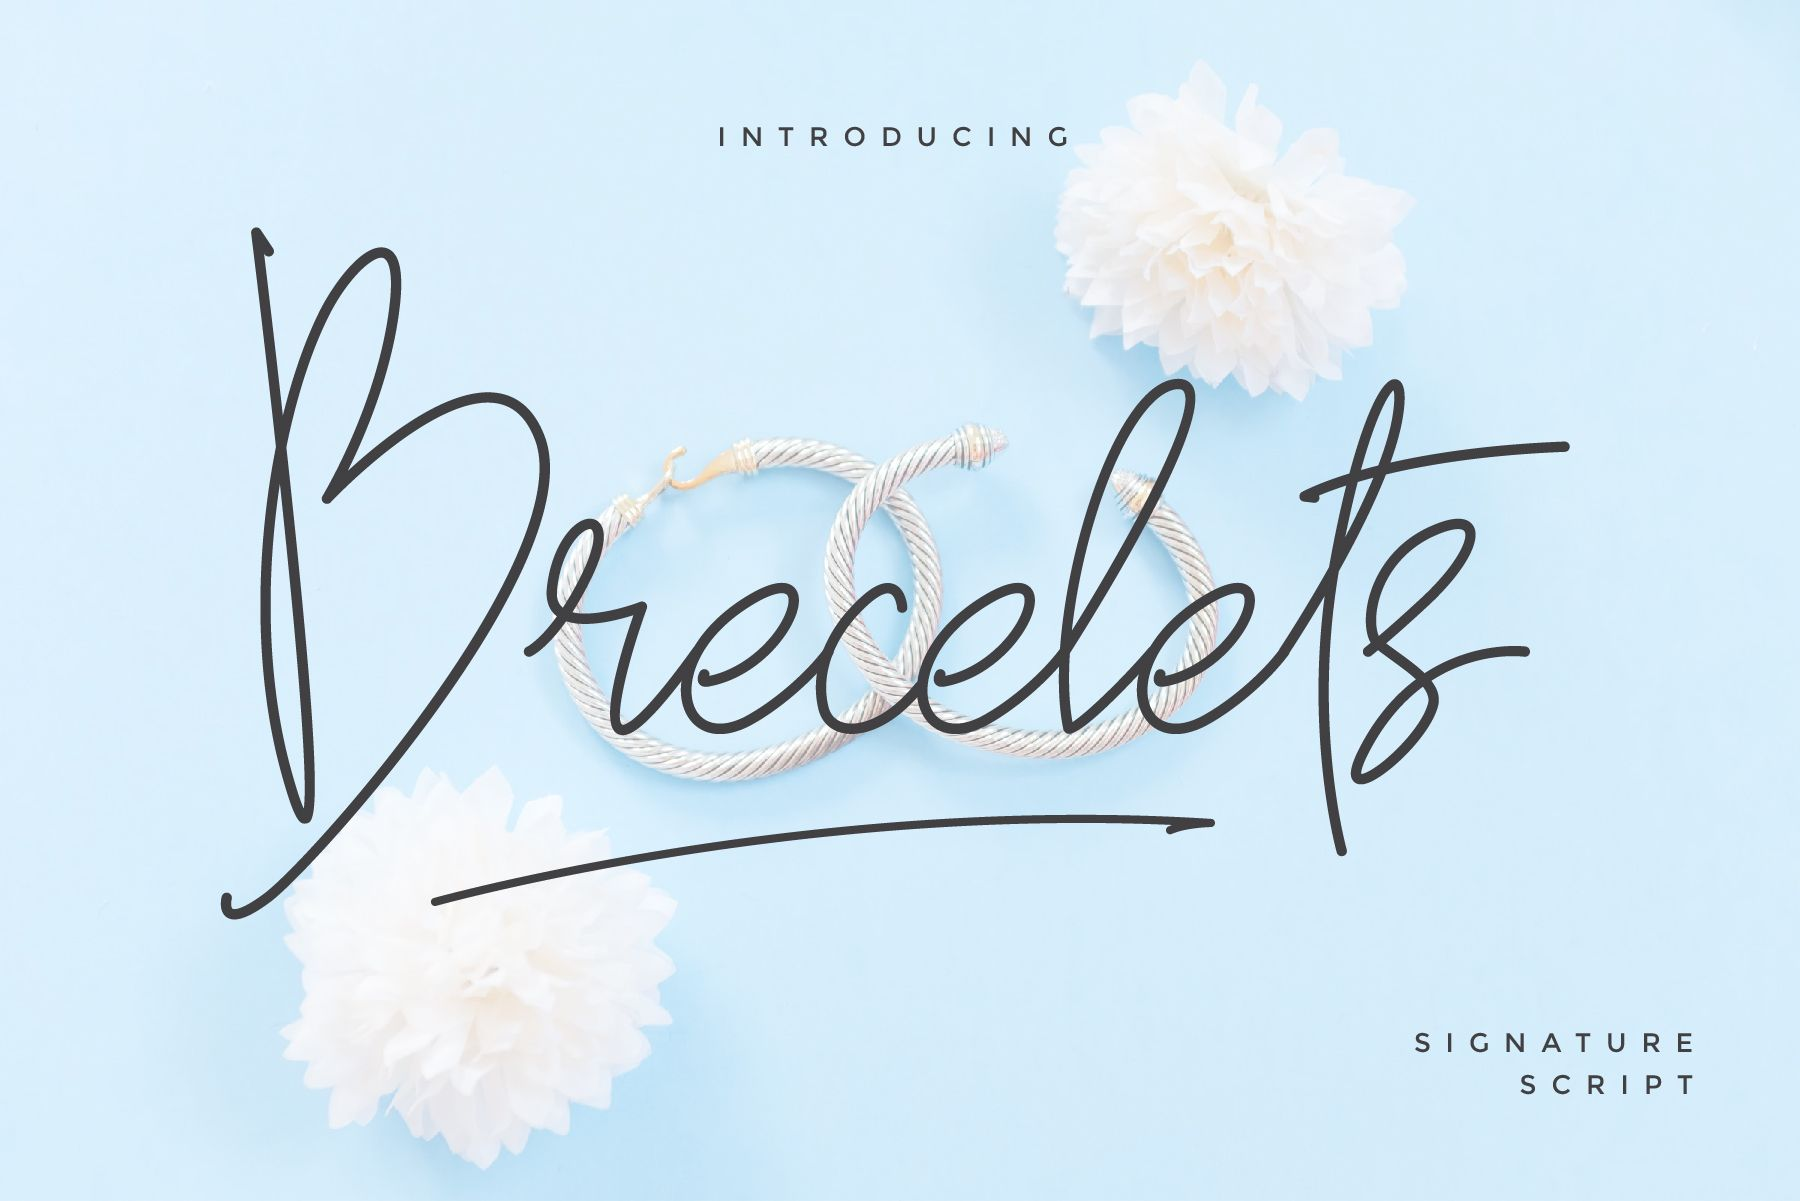 Download Brecelets (Font) by MuSan